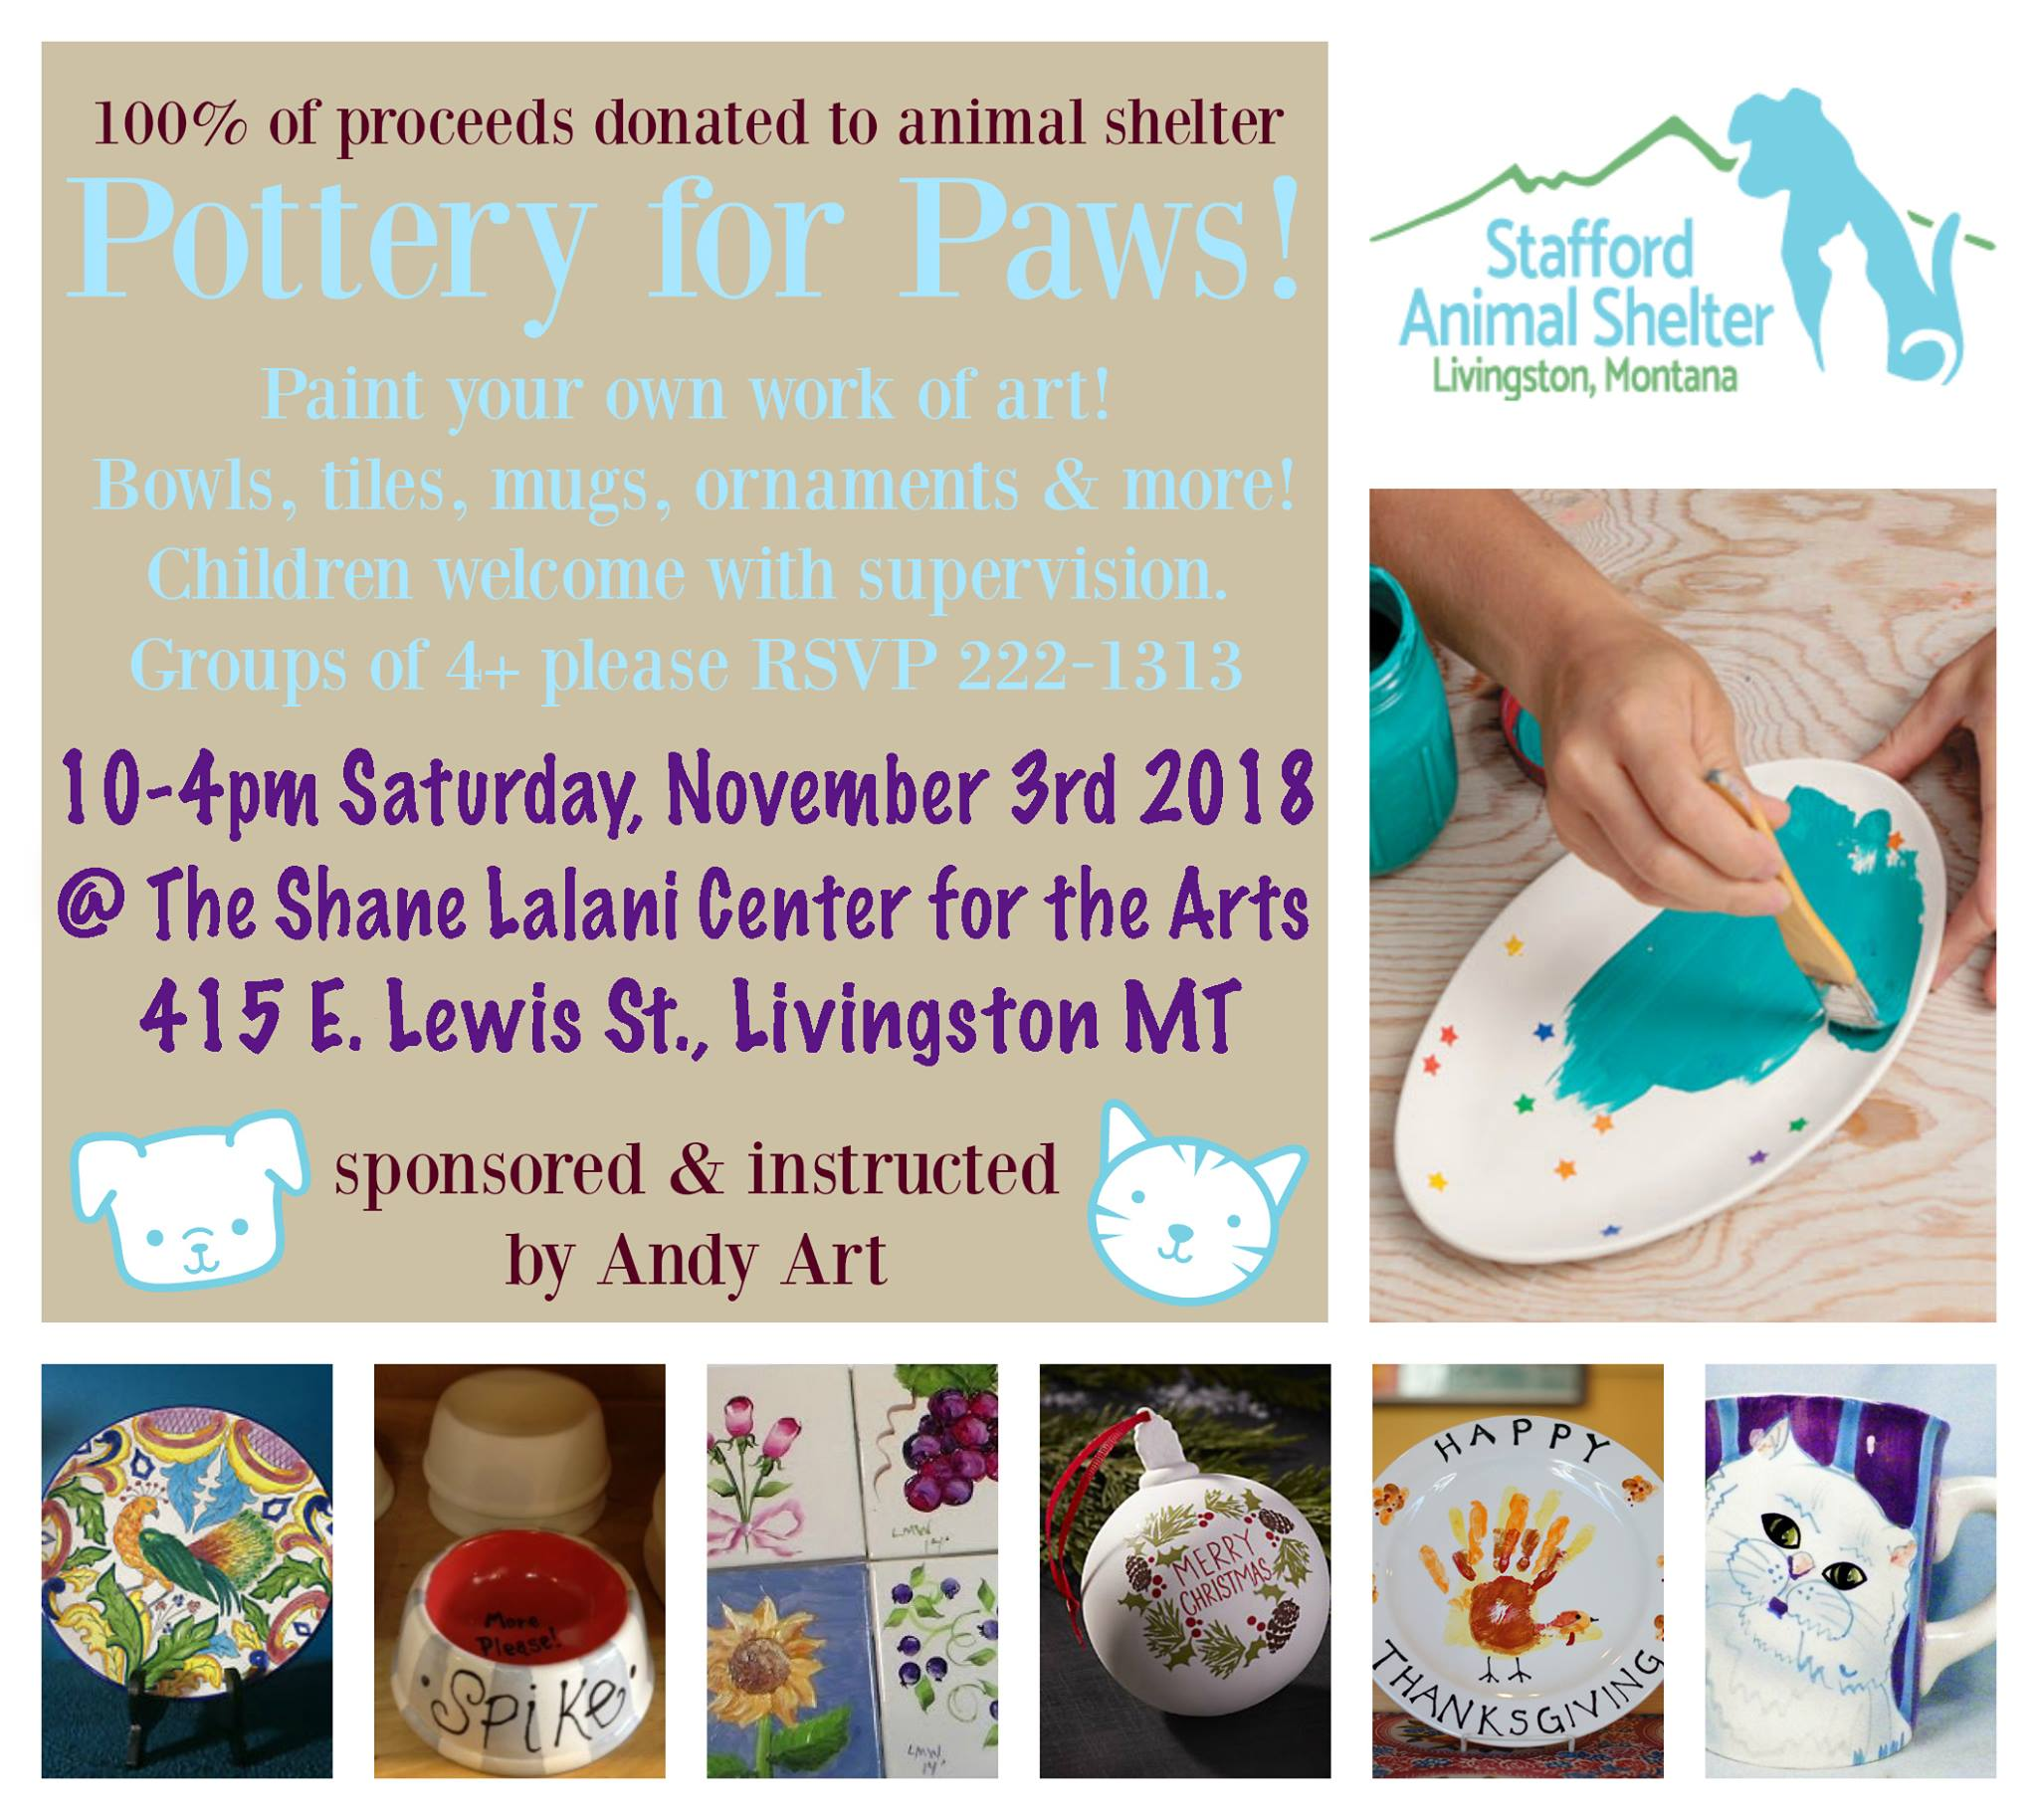 Pottery for Paws: Stafford Animal Shelter